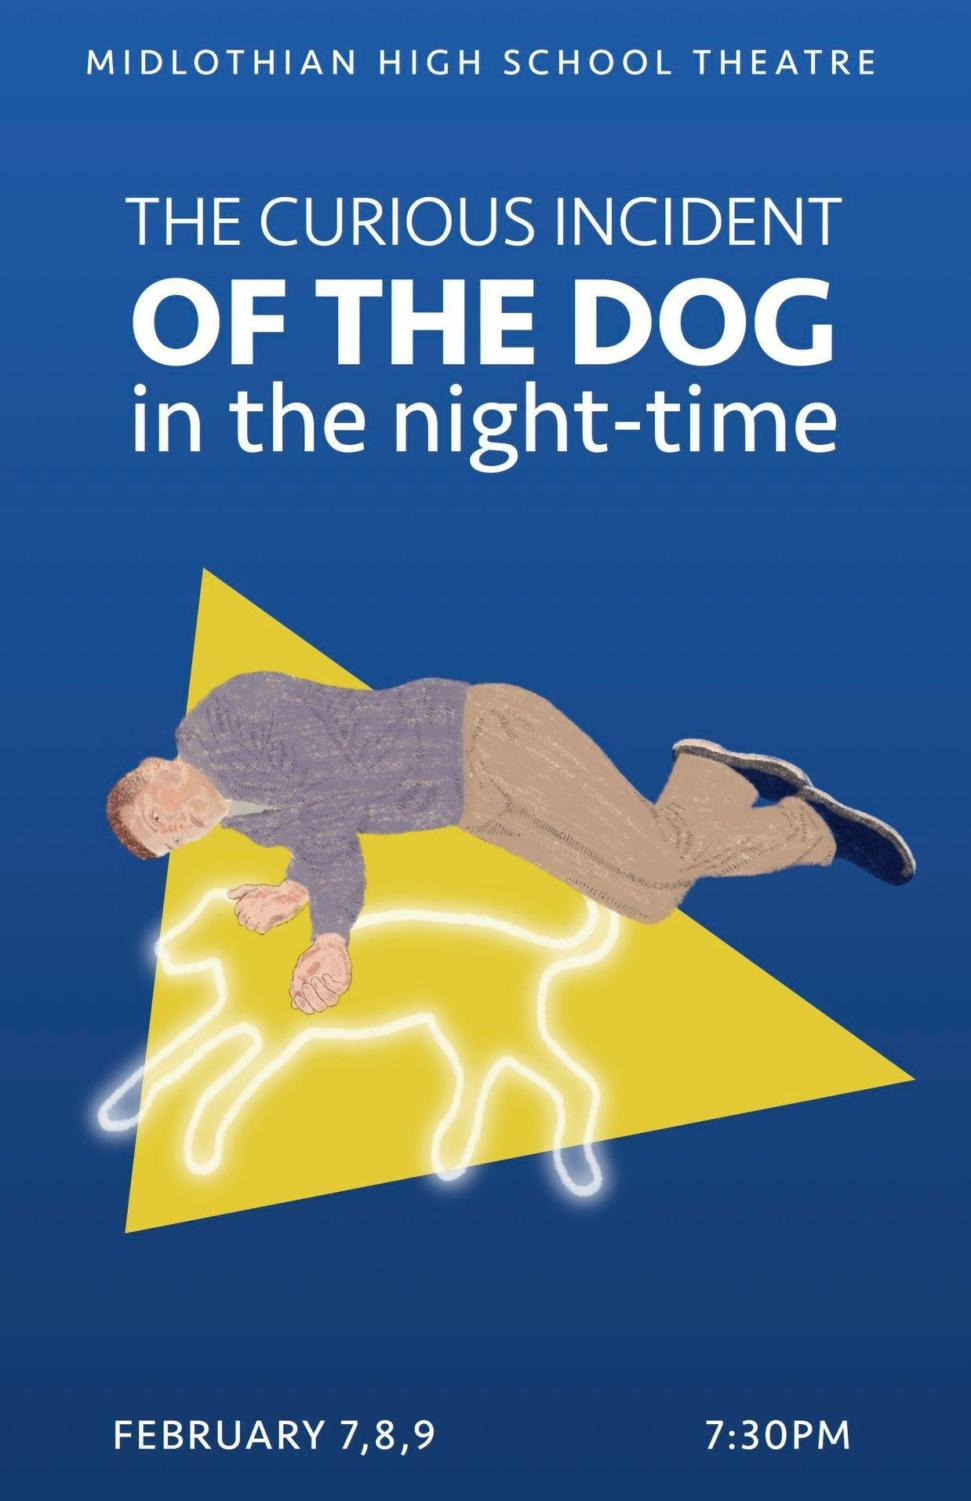 The Curious Incident of the Dog in the Night-time opens on Thursday, February 7, 2019 at Midlothian High School.